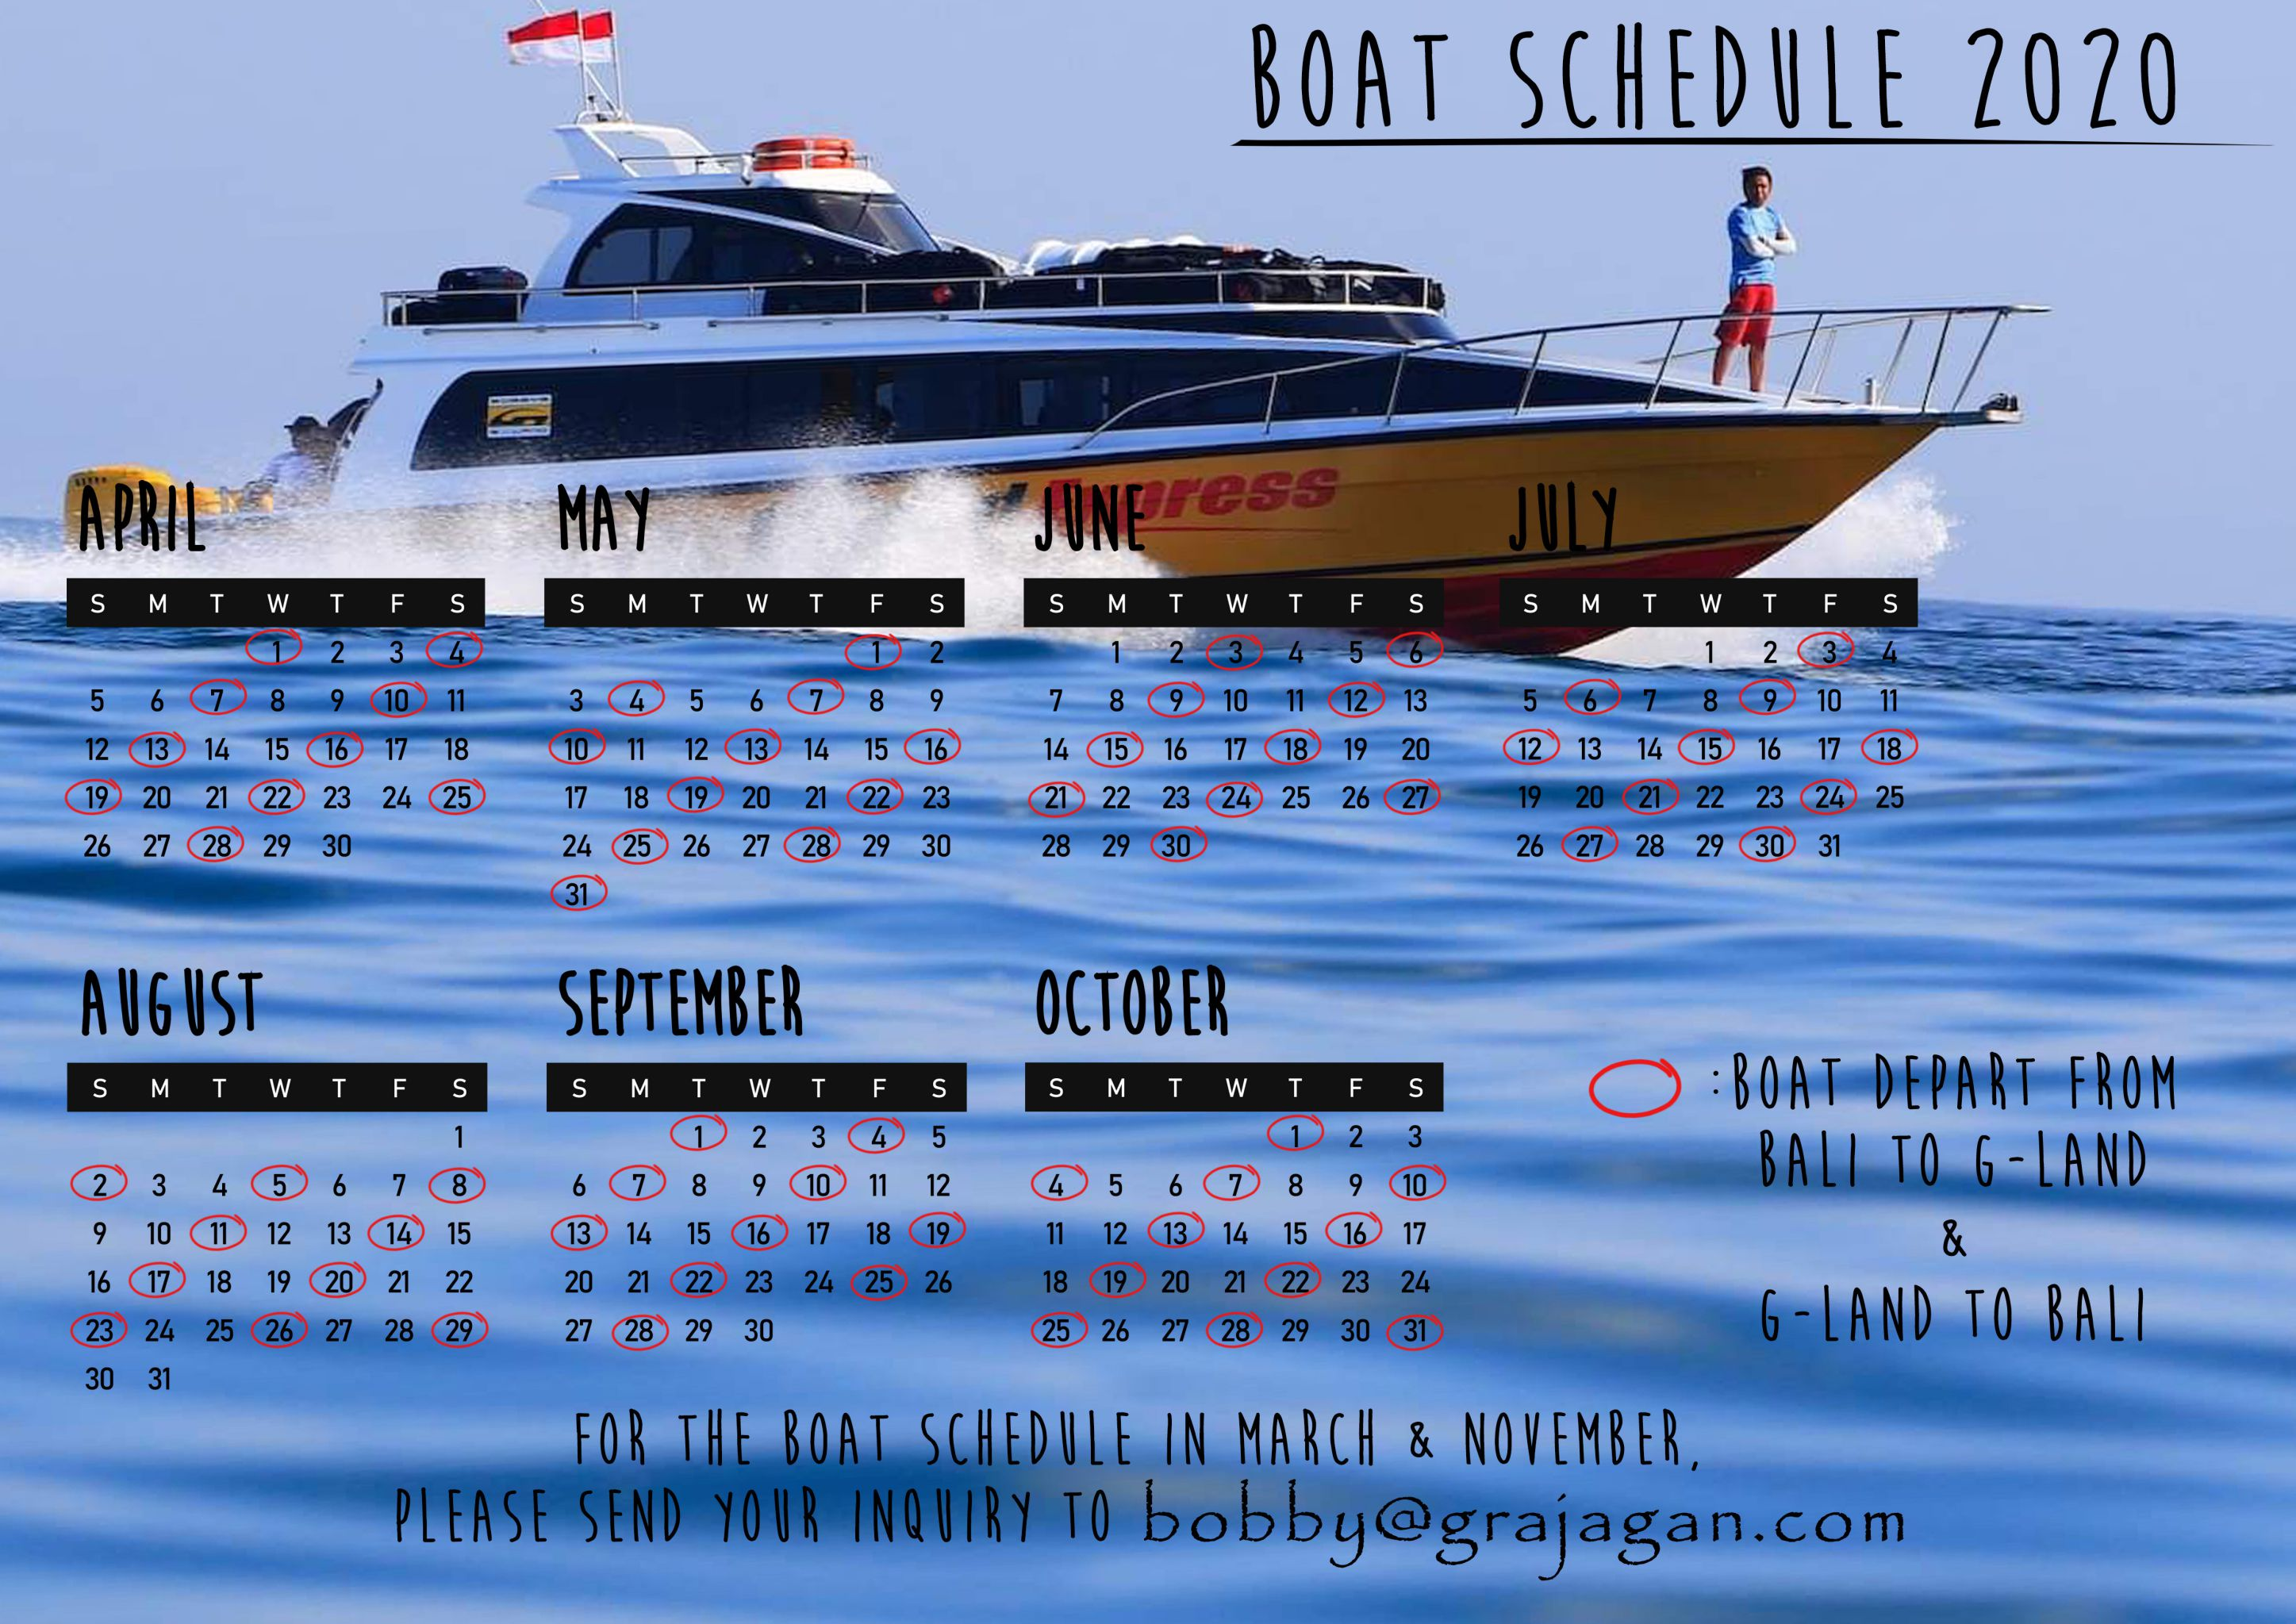 G-Land Bobby's Boat Schedule 2020